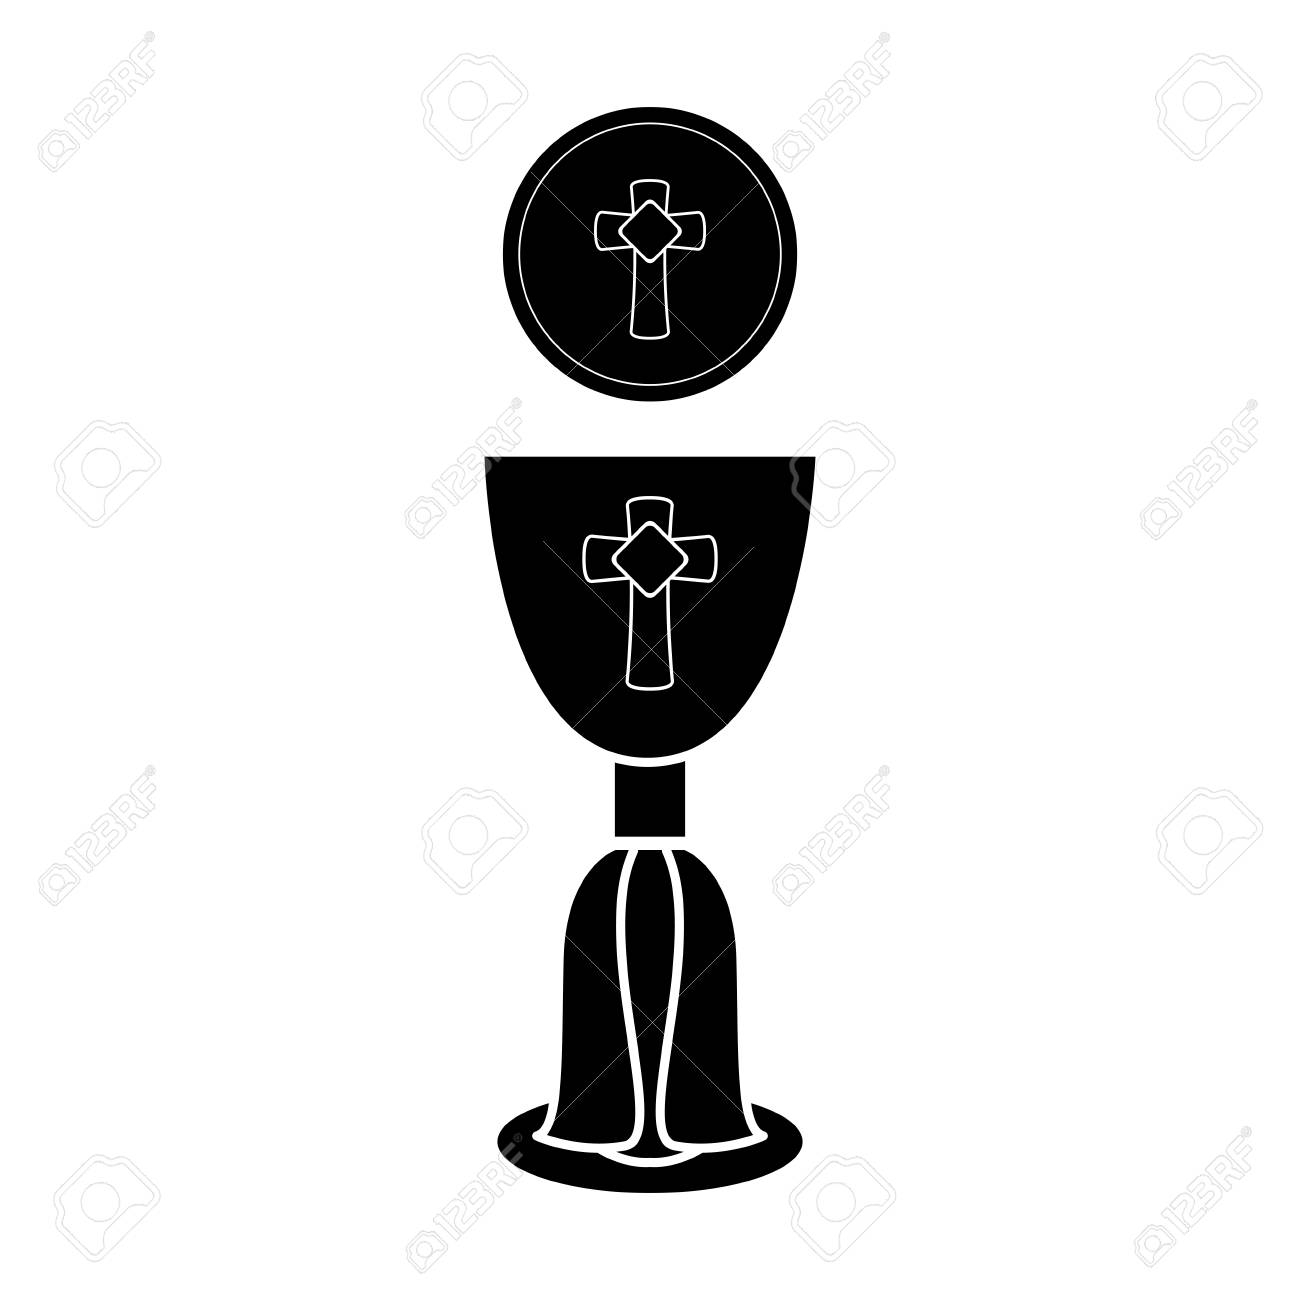 Silhouette of a communion cup and host. Vector illustration design - 112304572